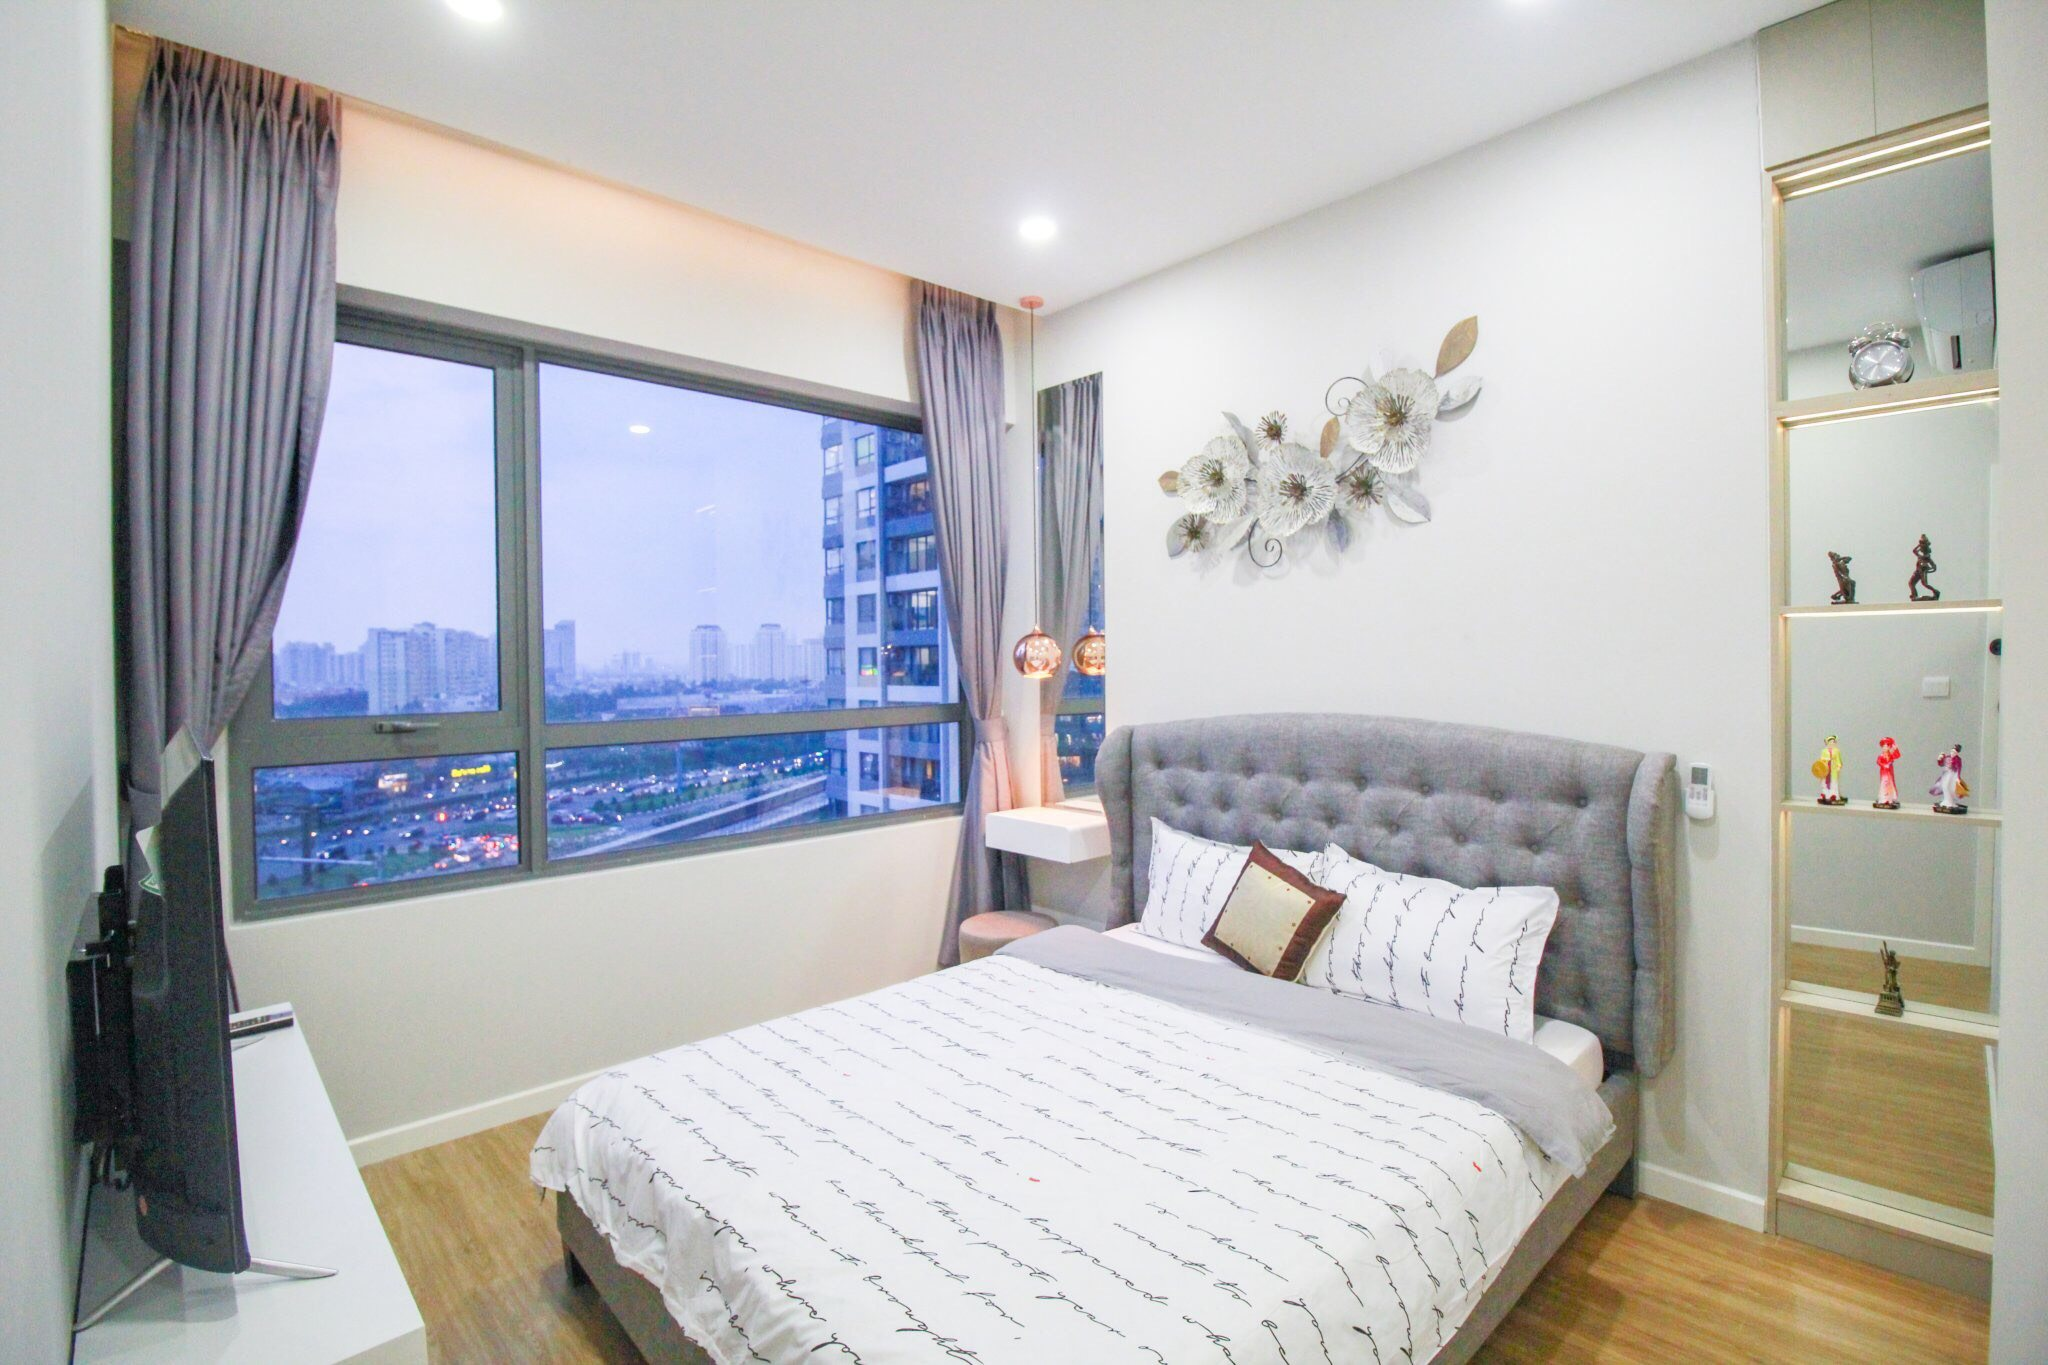 D2291050 - Apartment for rent - Masteri An Phu - 2 bedroom